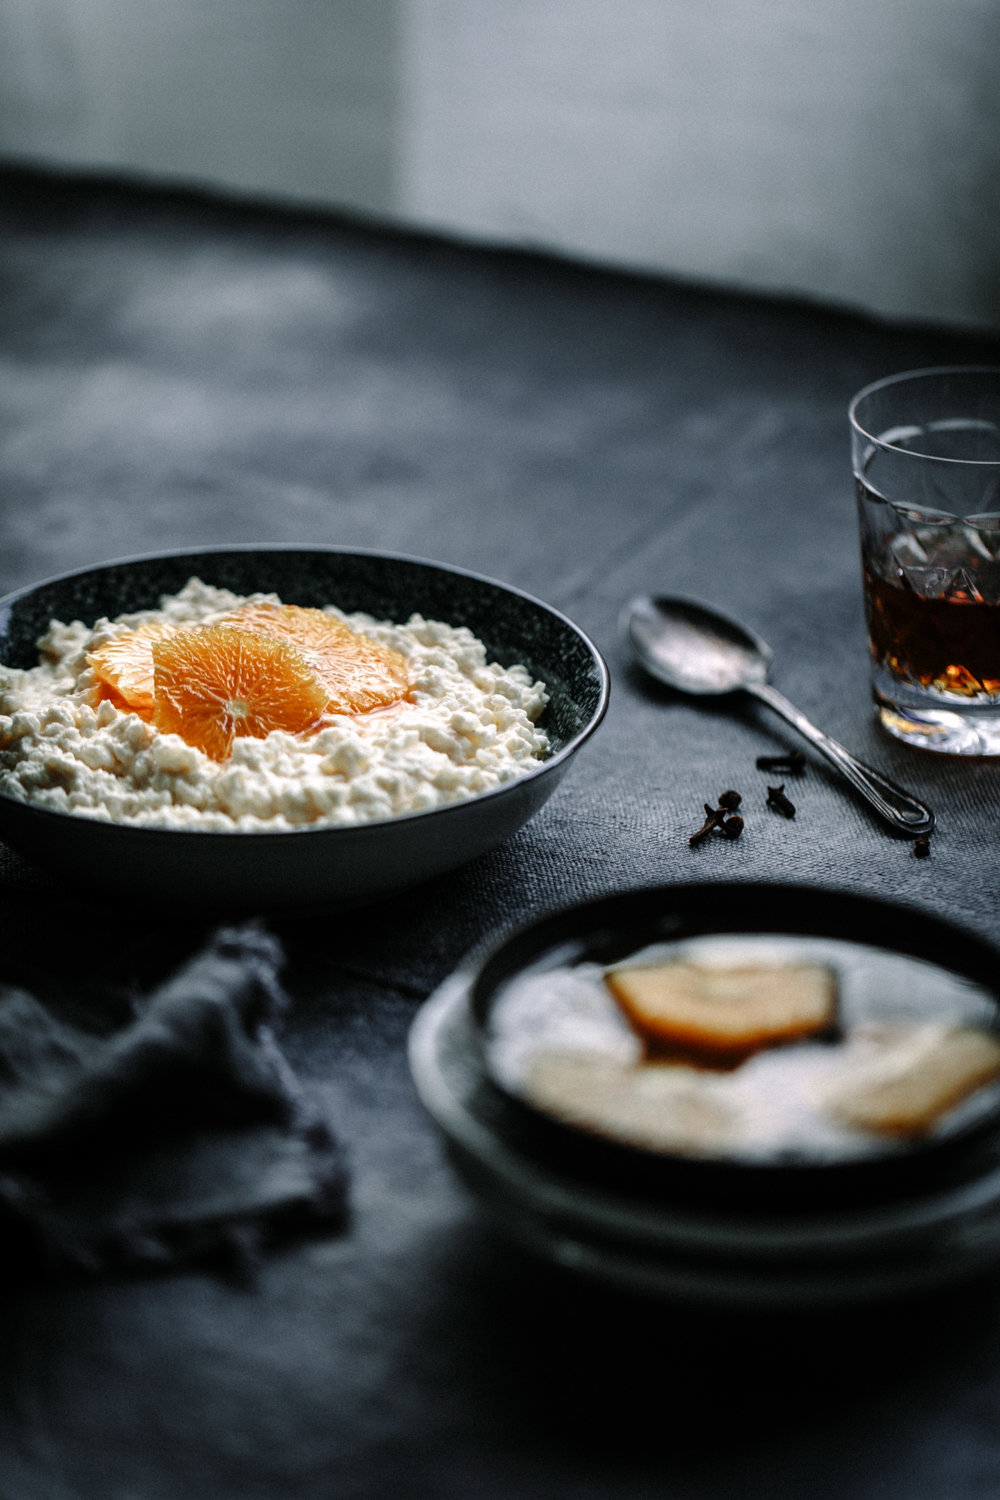 Rice Pudding With Rum Soaked Oranges - Anisa Sabet - The Macadames - Food Travel Lifestyle Photographer 215